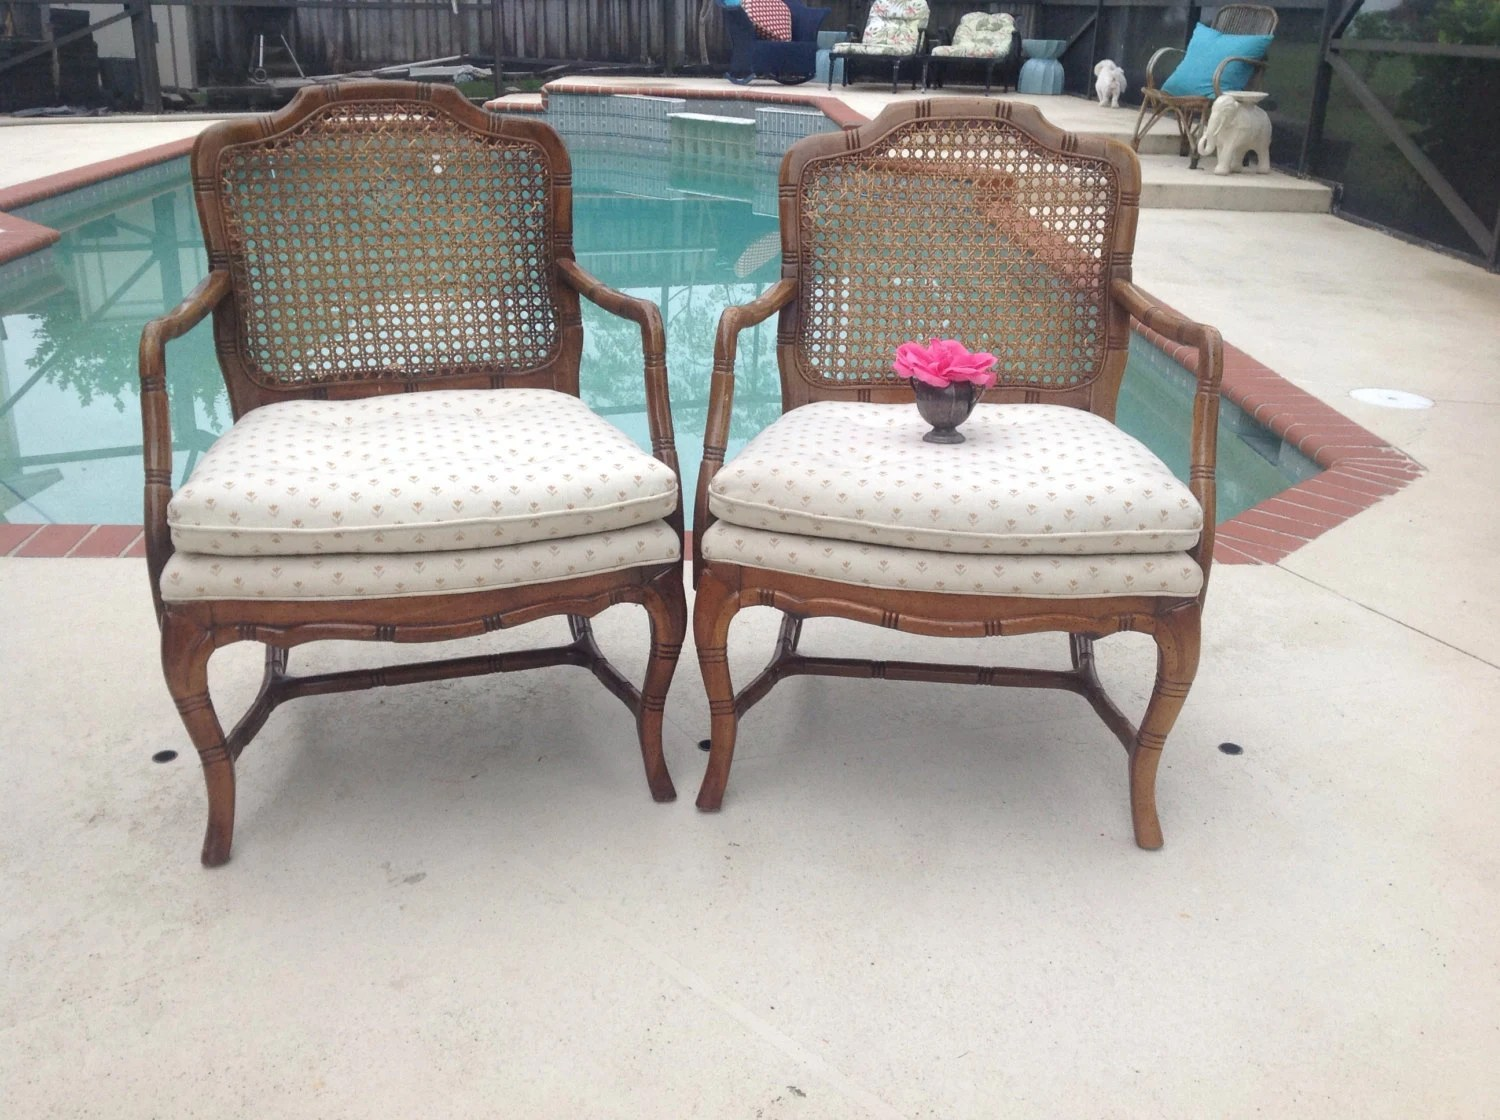 bamboo chairs for sale papasan chair outdoor cushion faux pair cane back hollywood regency